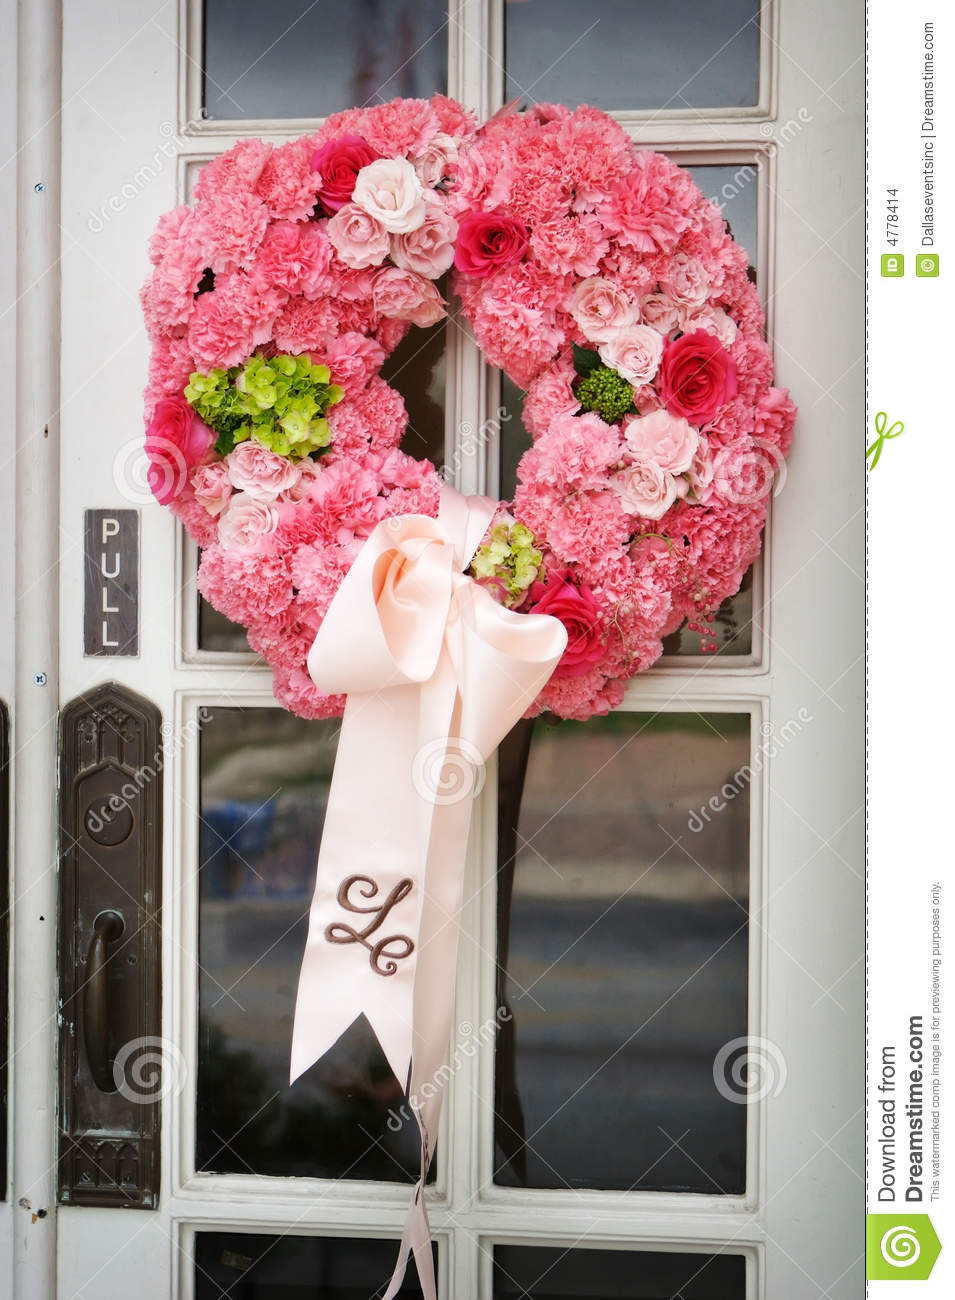 Wedding Flowers On The Front Door Of A Church Stock Photo - Image of ...